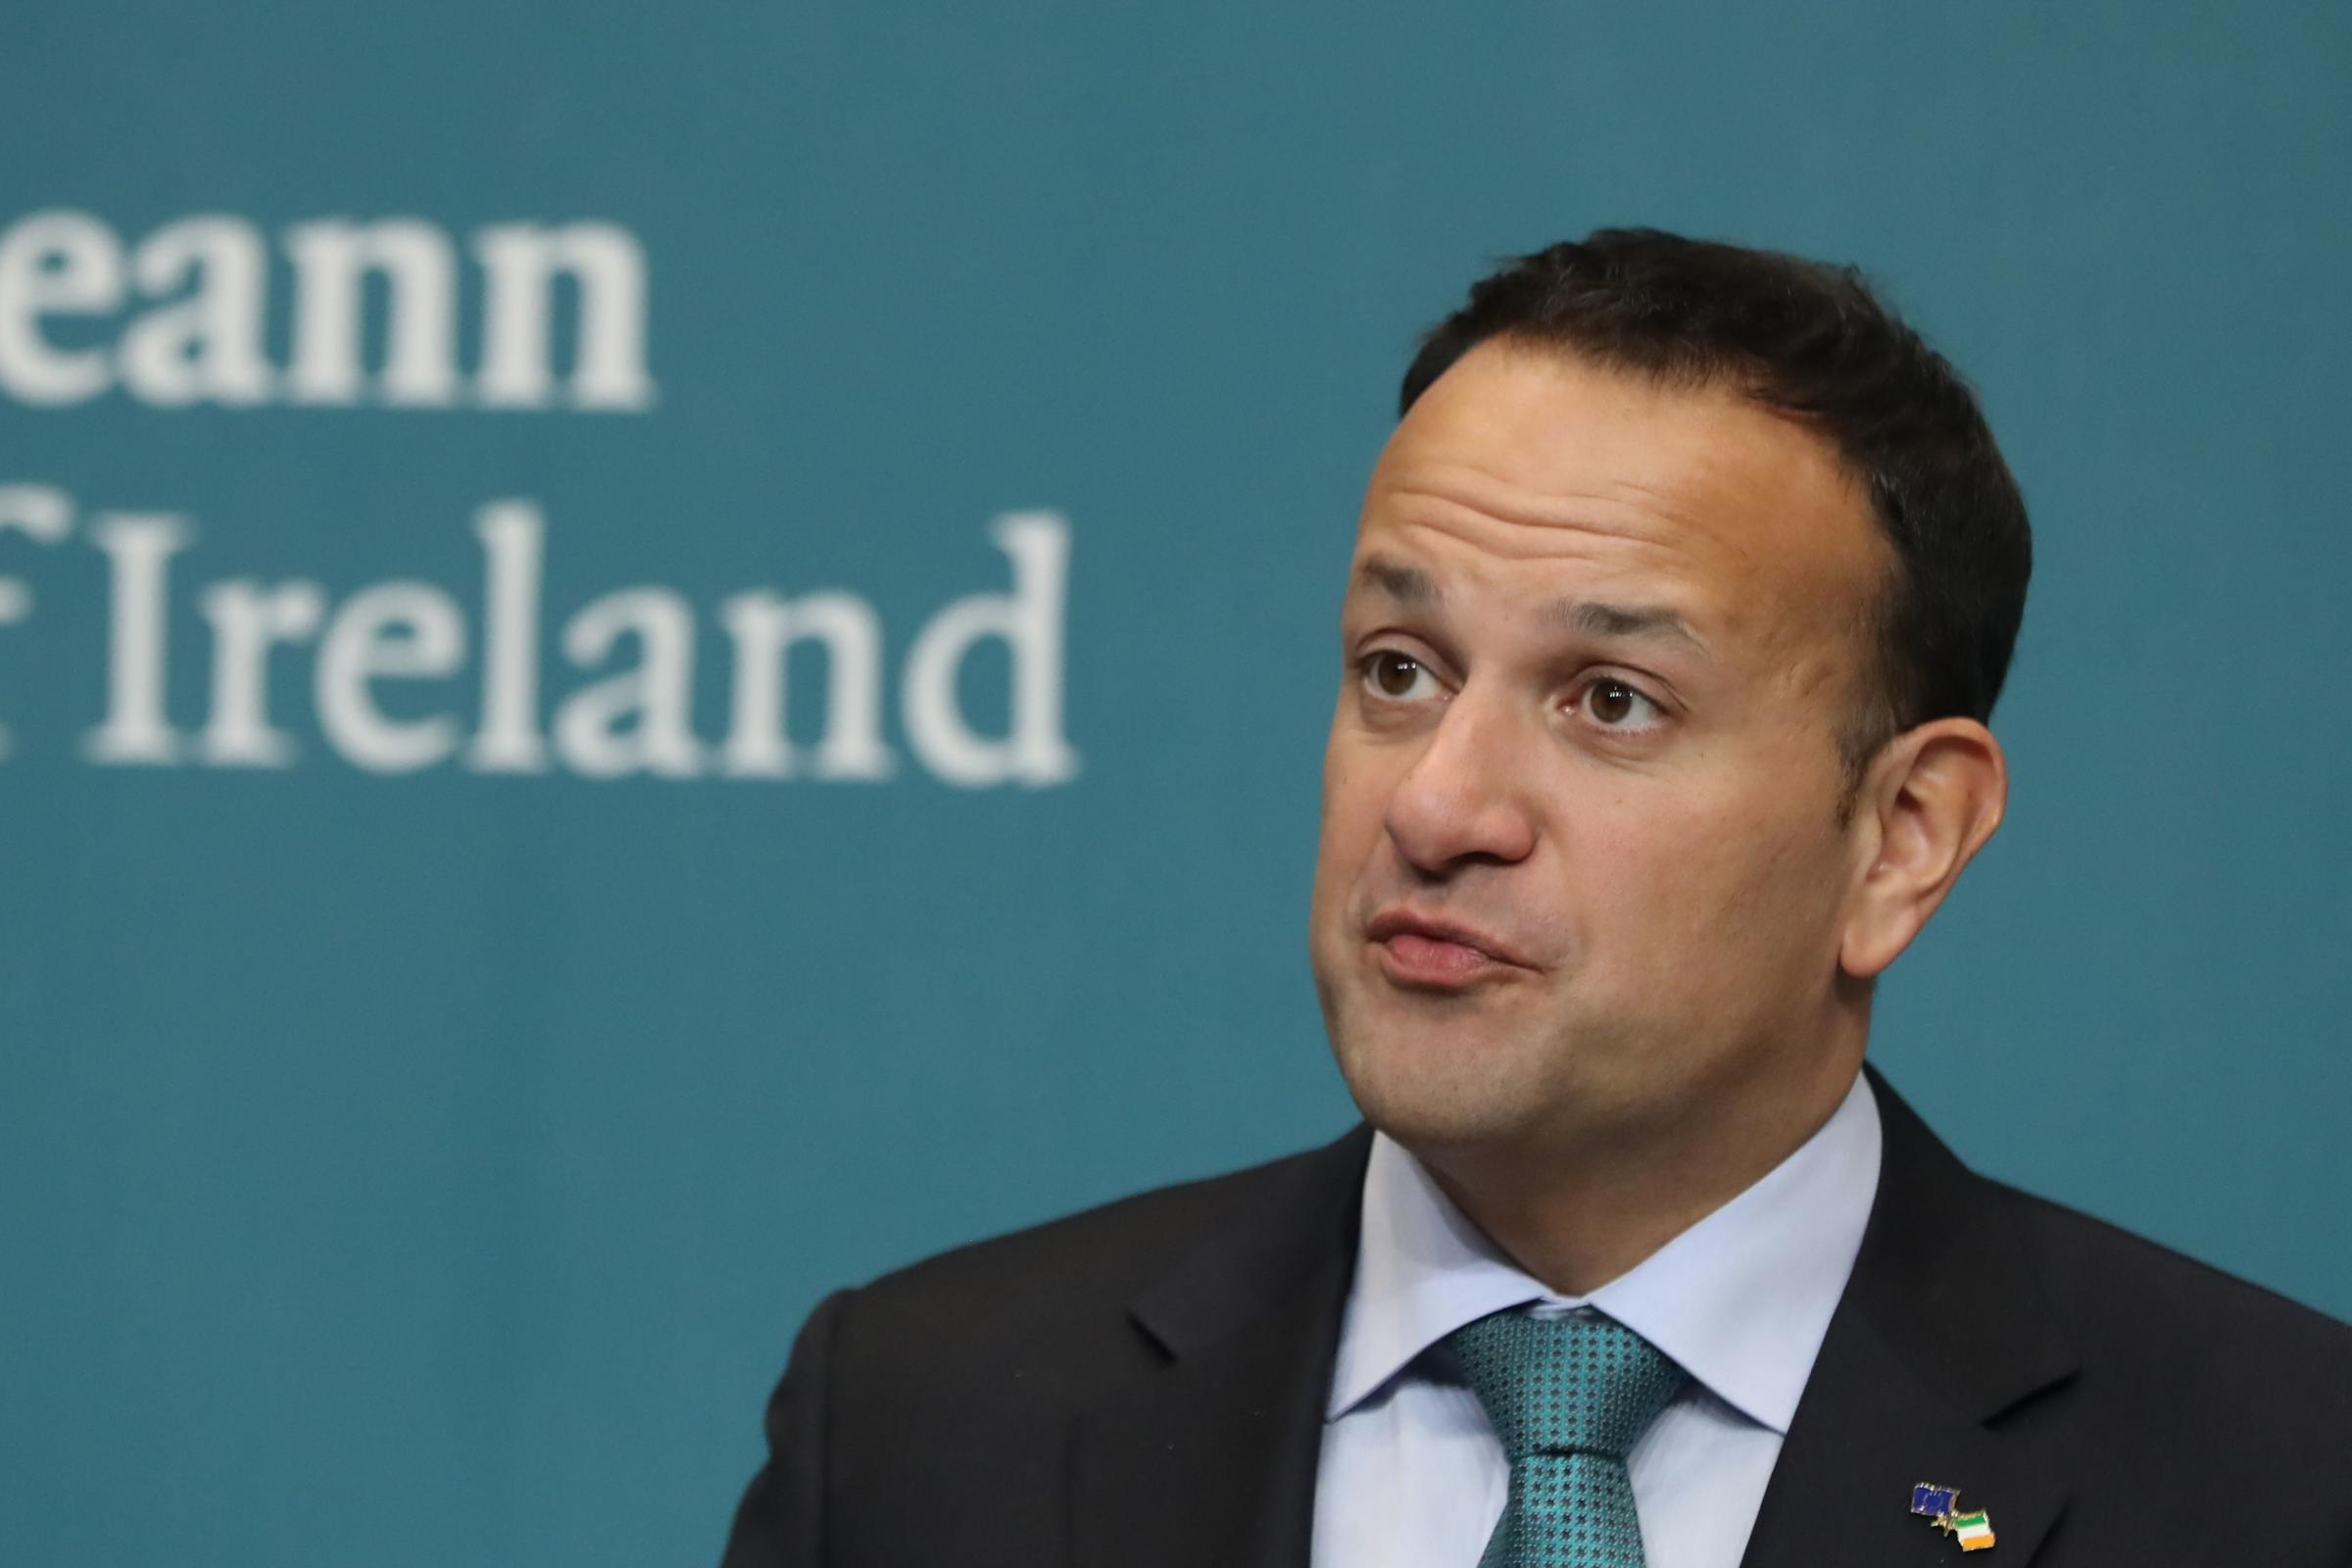 Leo Varadkar speaks at a press conference on Brexit